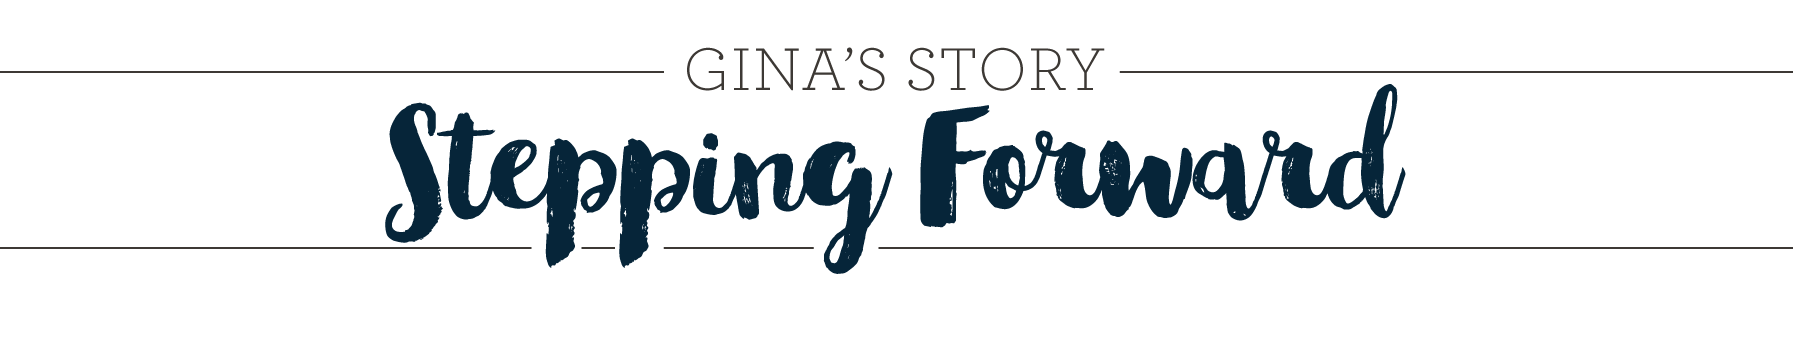 Gina's Story Stepping Forward